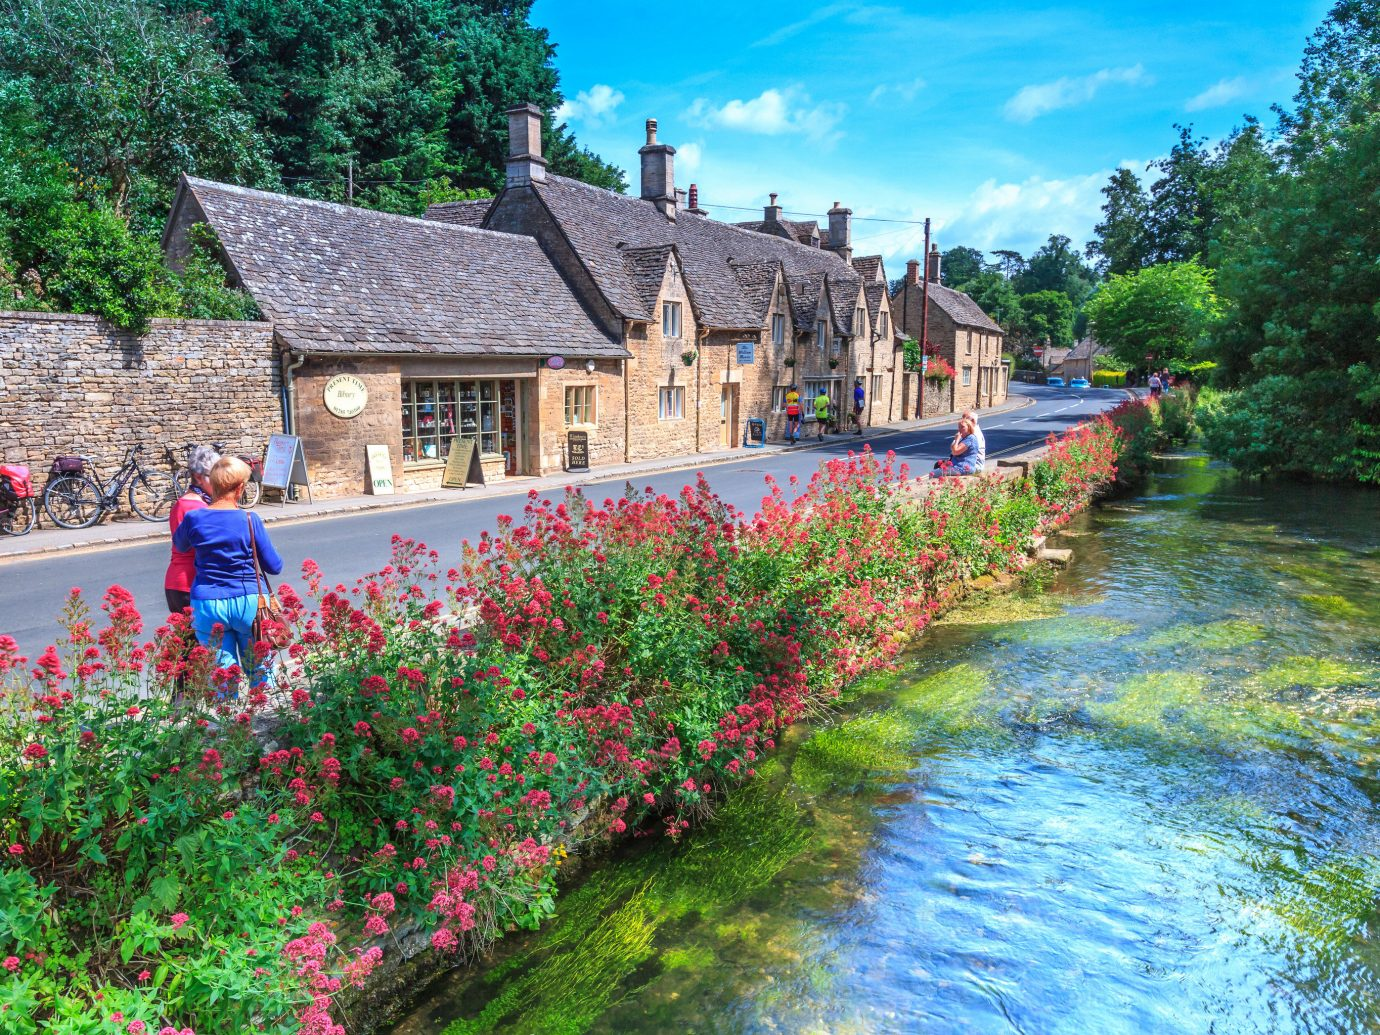 Trip Ideas flower plant waterway Nature water tree River flora reflection watercourse house bank sky Canal landscape tourism Garden spring cottage leisure Village real estate estate wildflower shrub flowering plant City